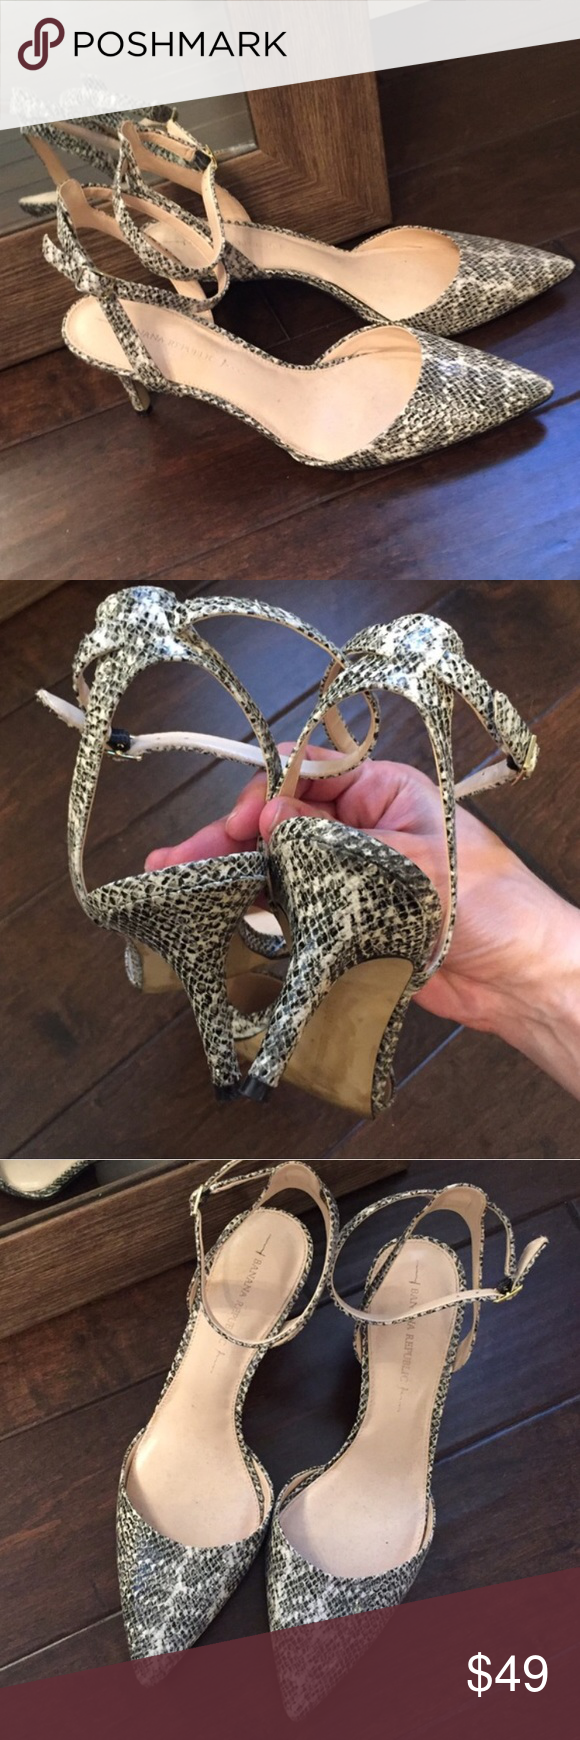 Snake Skin Heels Upper 100% leather. Size 10. Good worn condition. Only worn a few times. Will add heel height soon. Reasonable offers considered through the offer tool. Banana Republic Shoes Heels